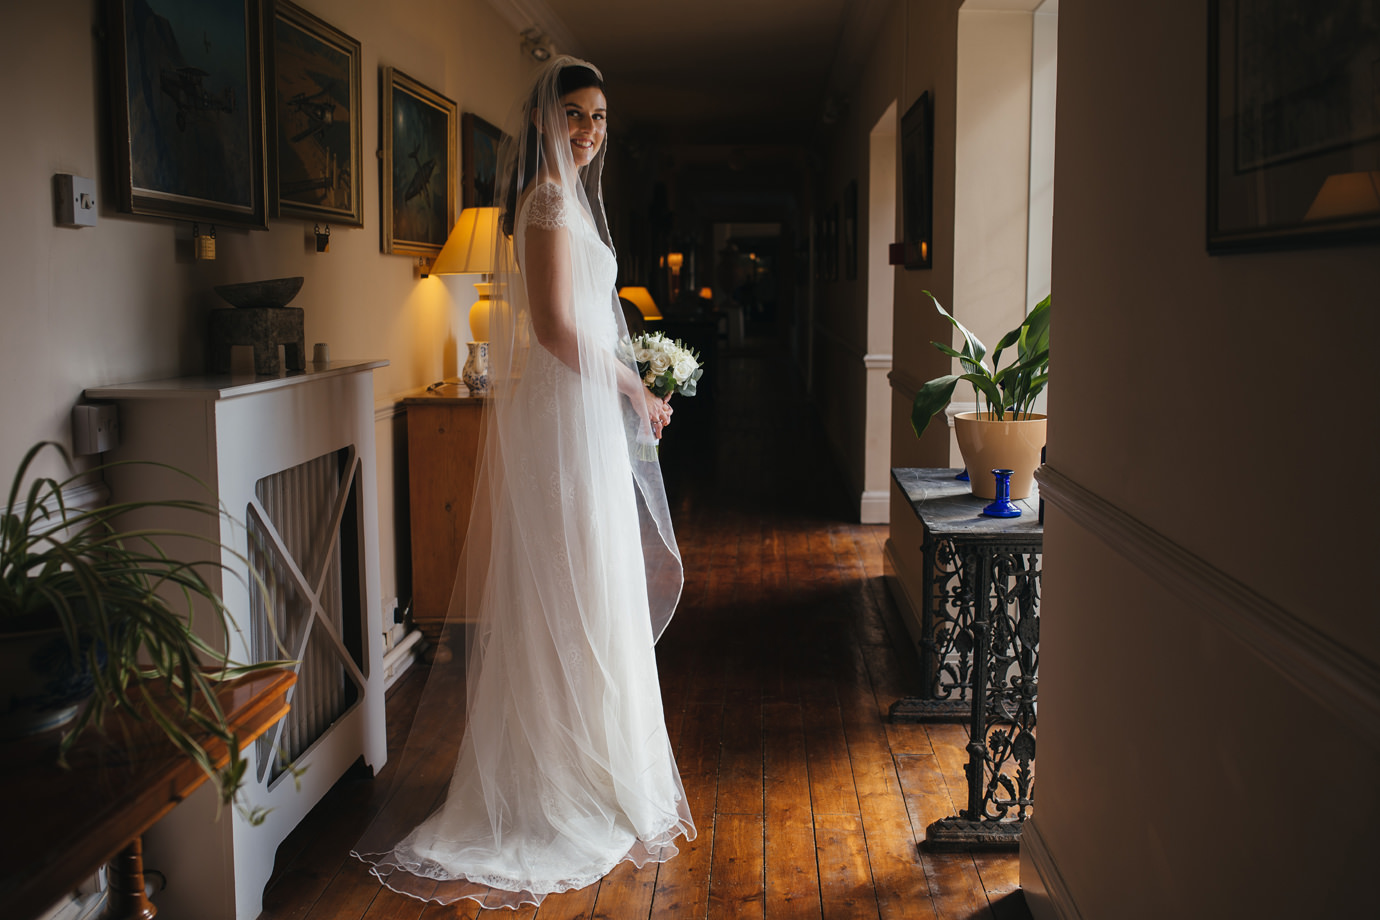 Bridal portraiture at Hemswell court